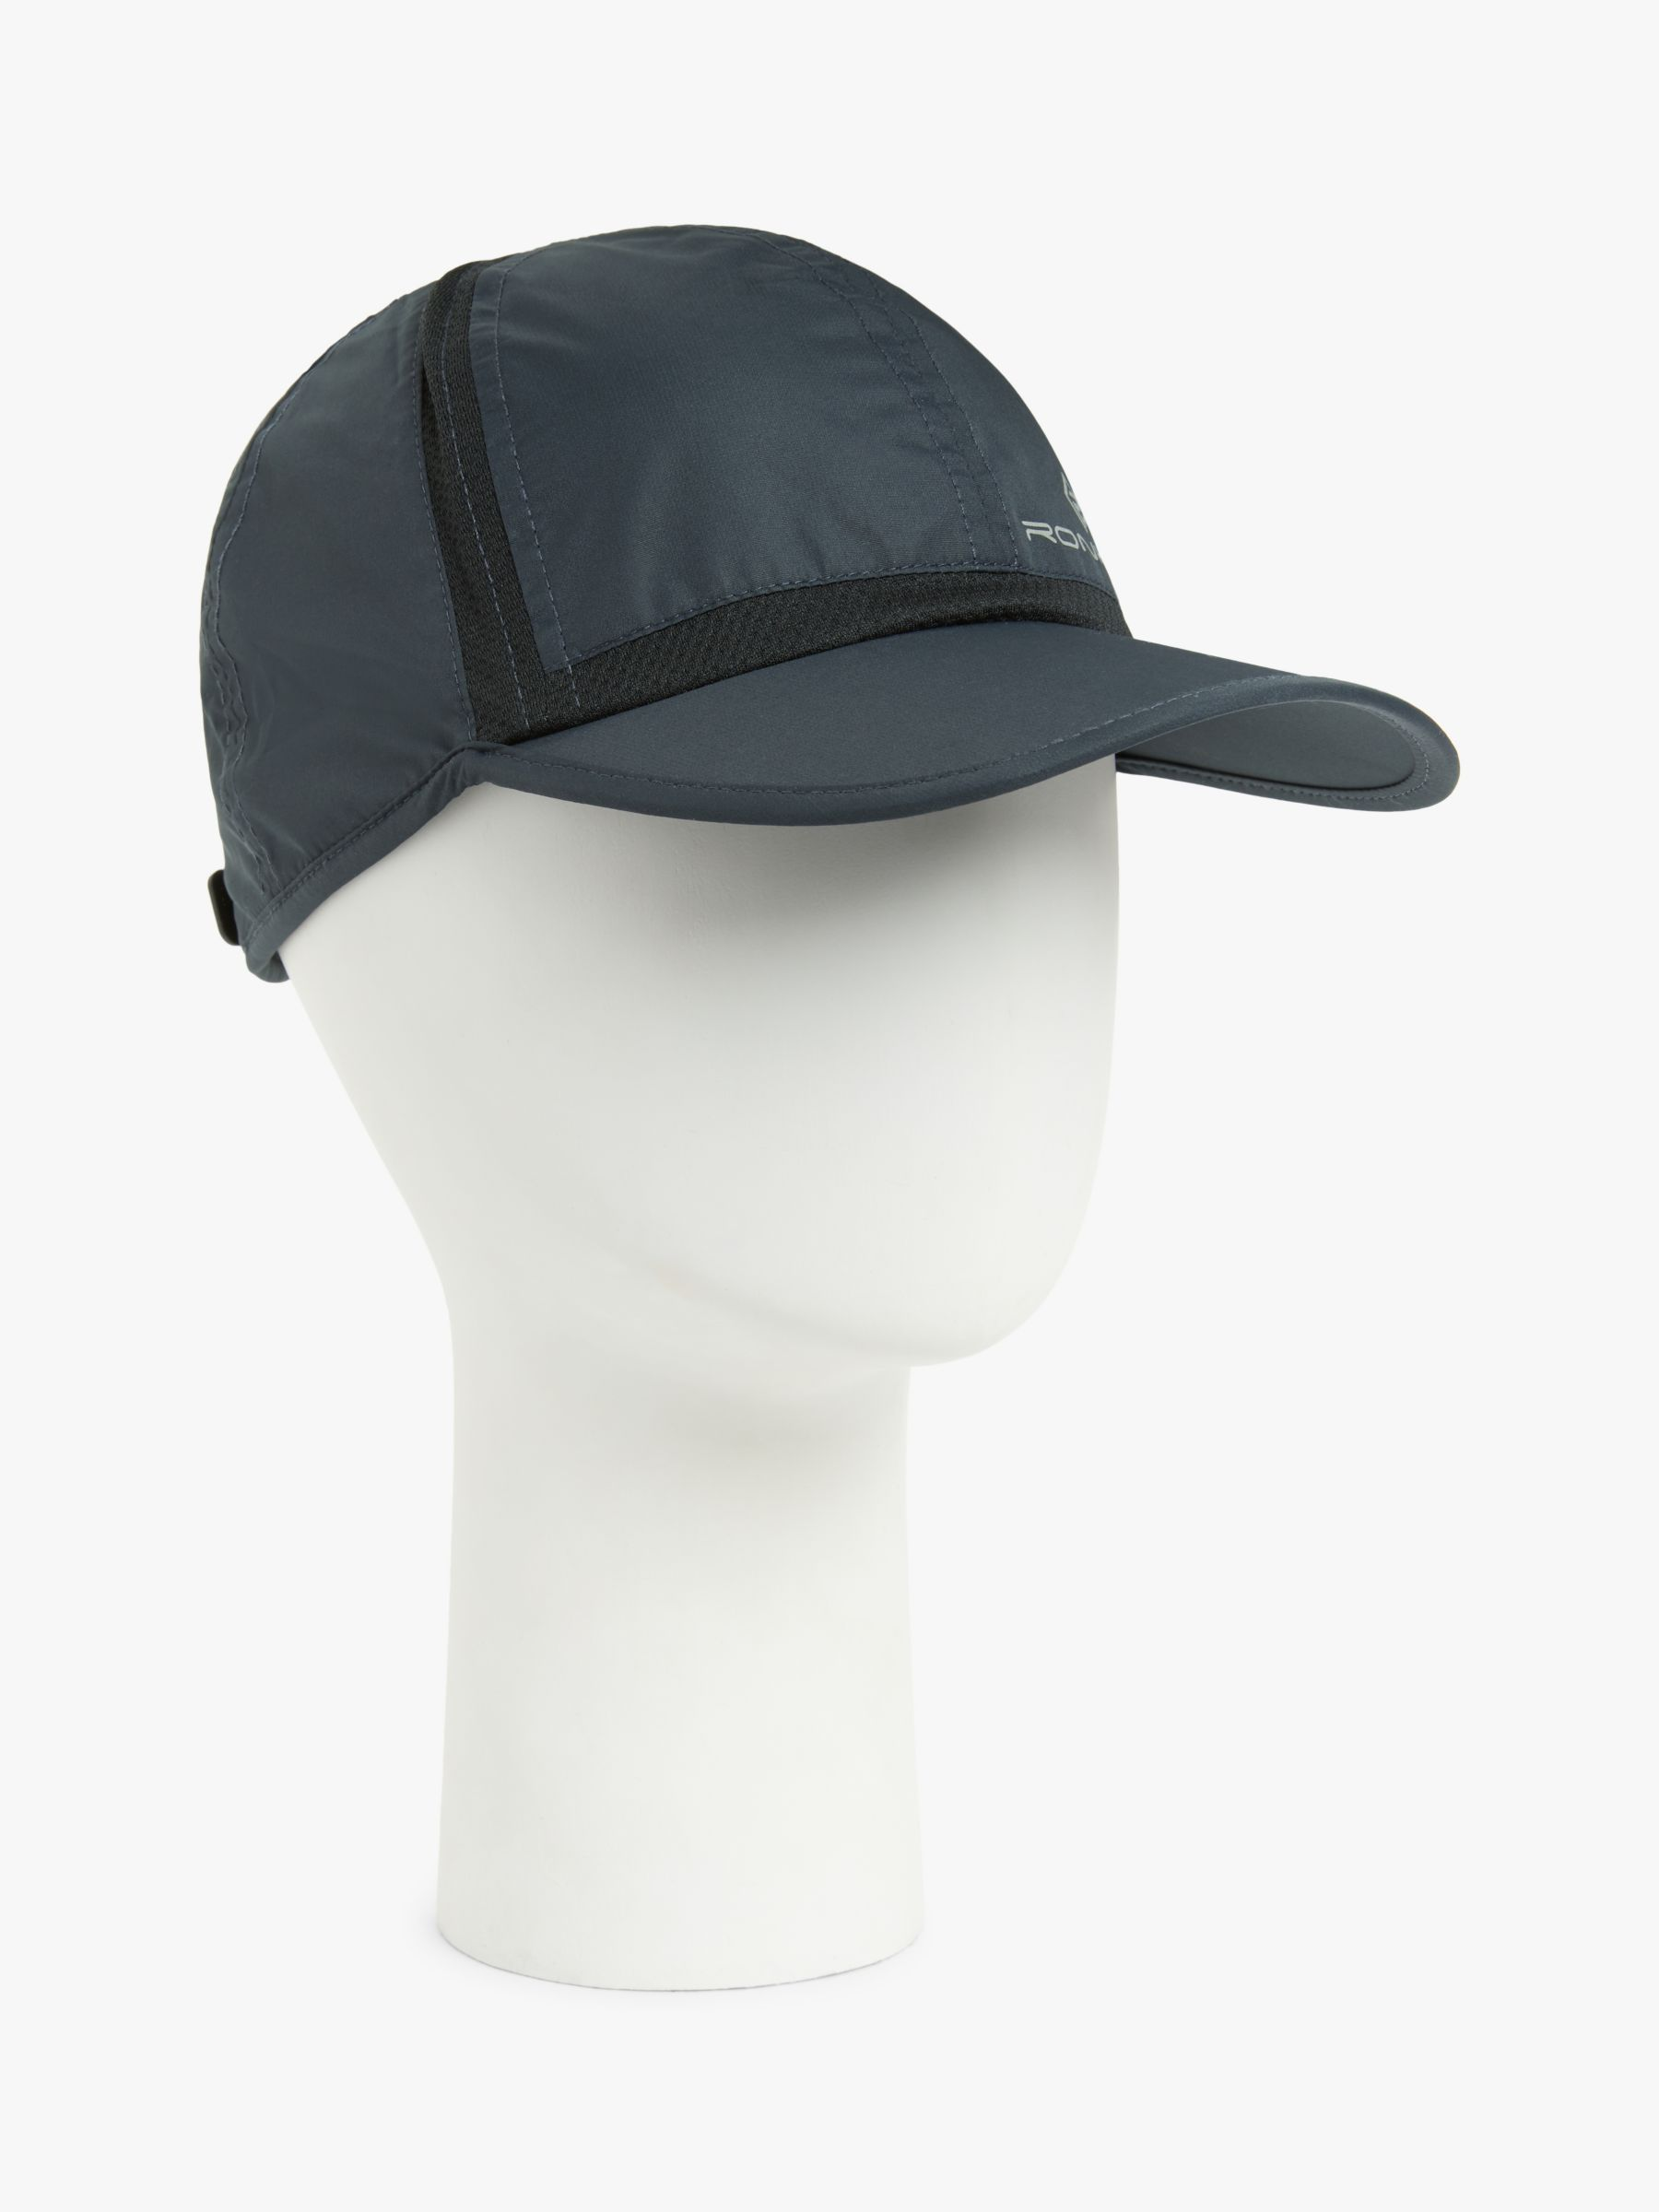 Ronhill Ronhill Running Cap, All Black